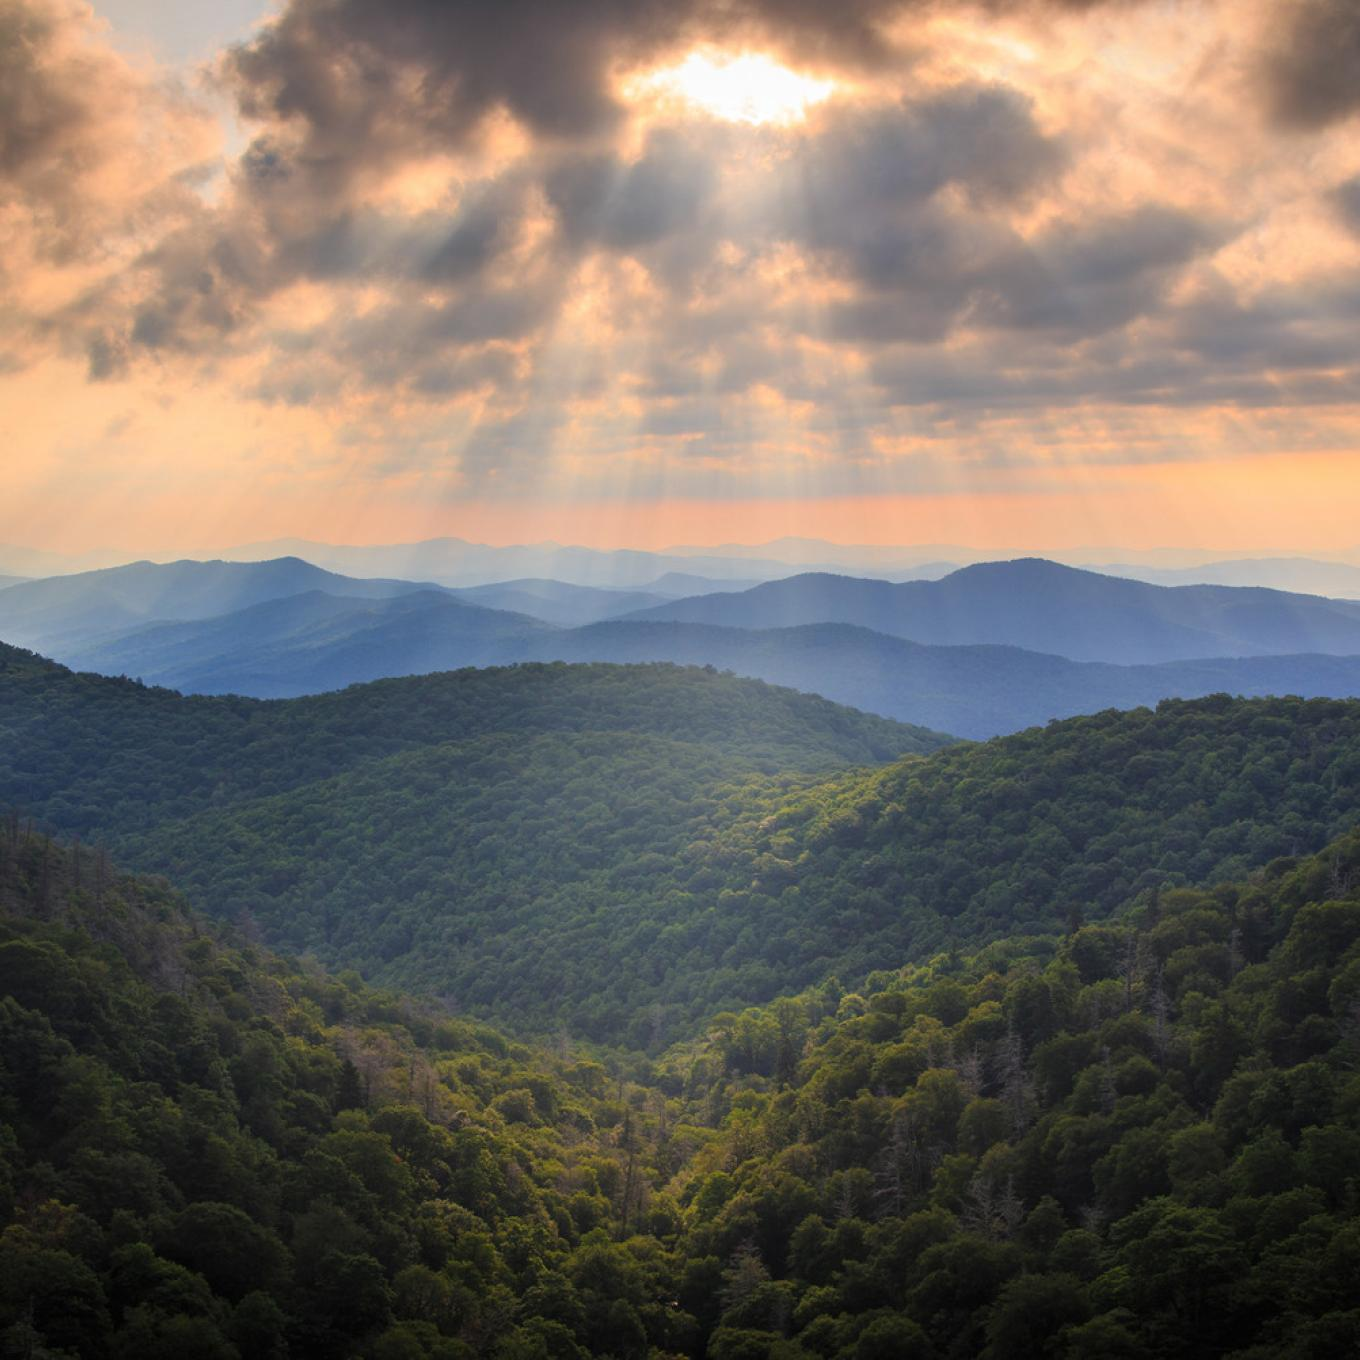 Las Blue Ridge Mountains en Carolina del Norte